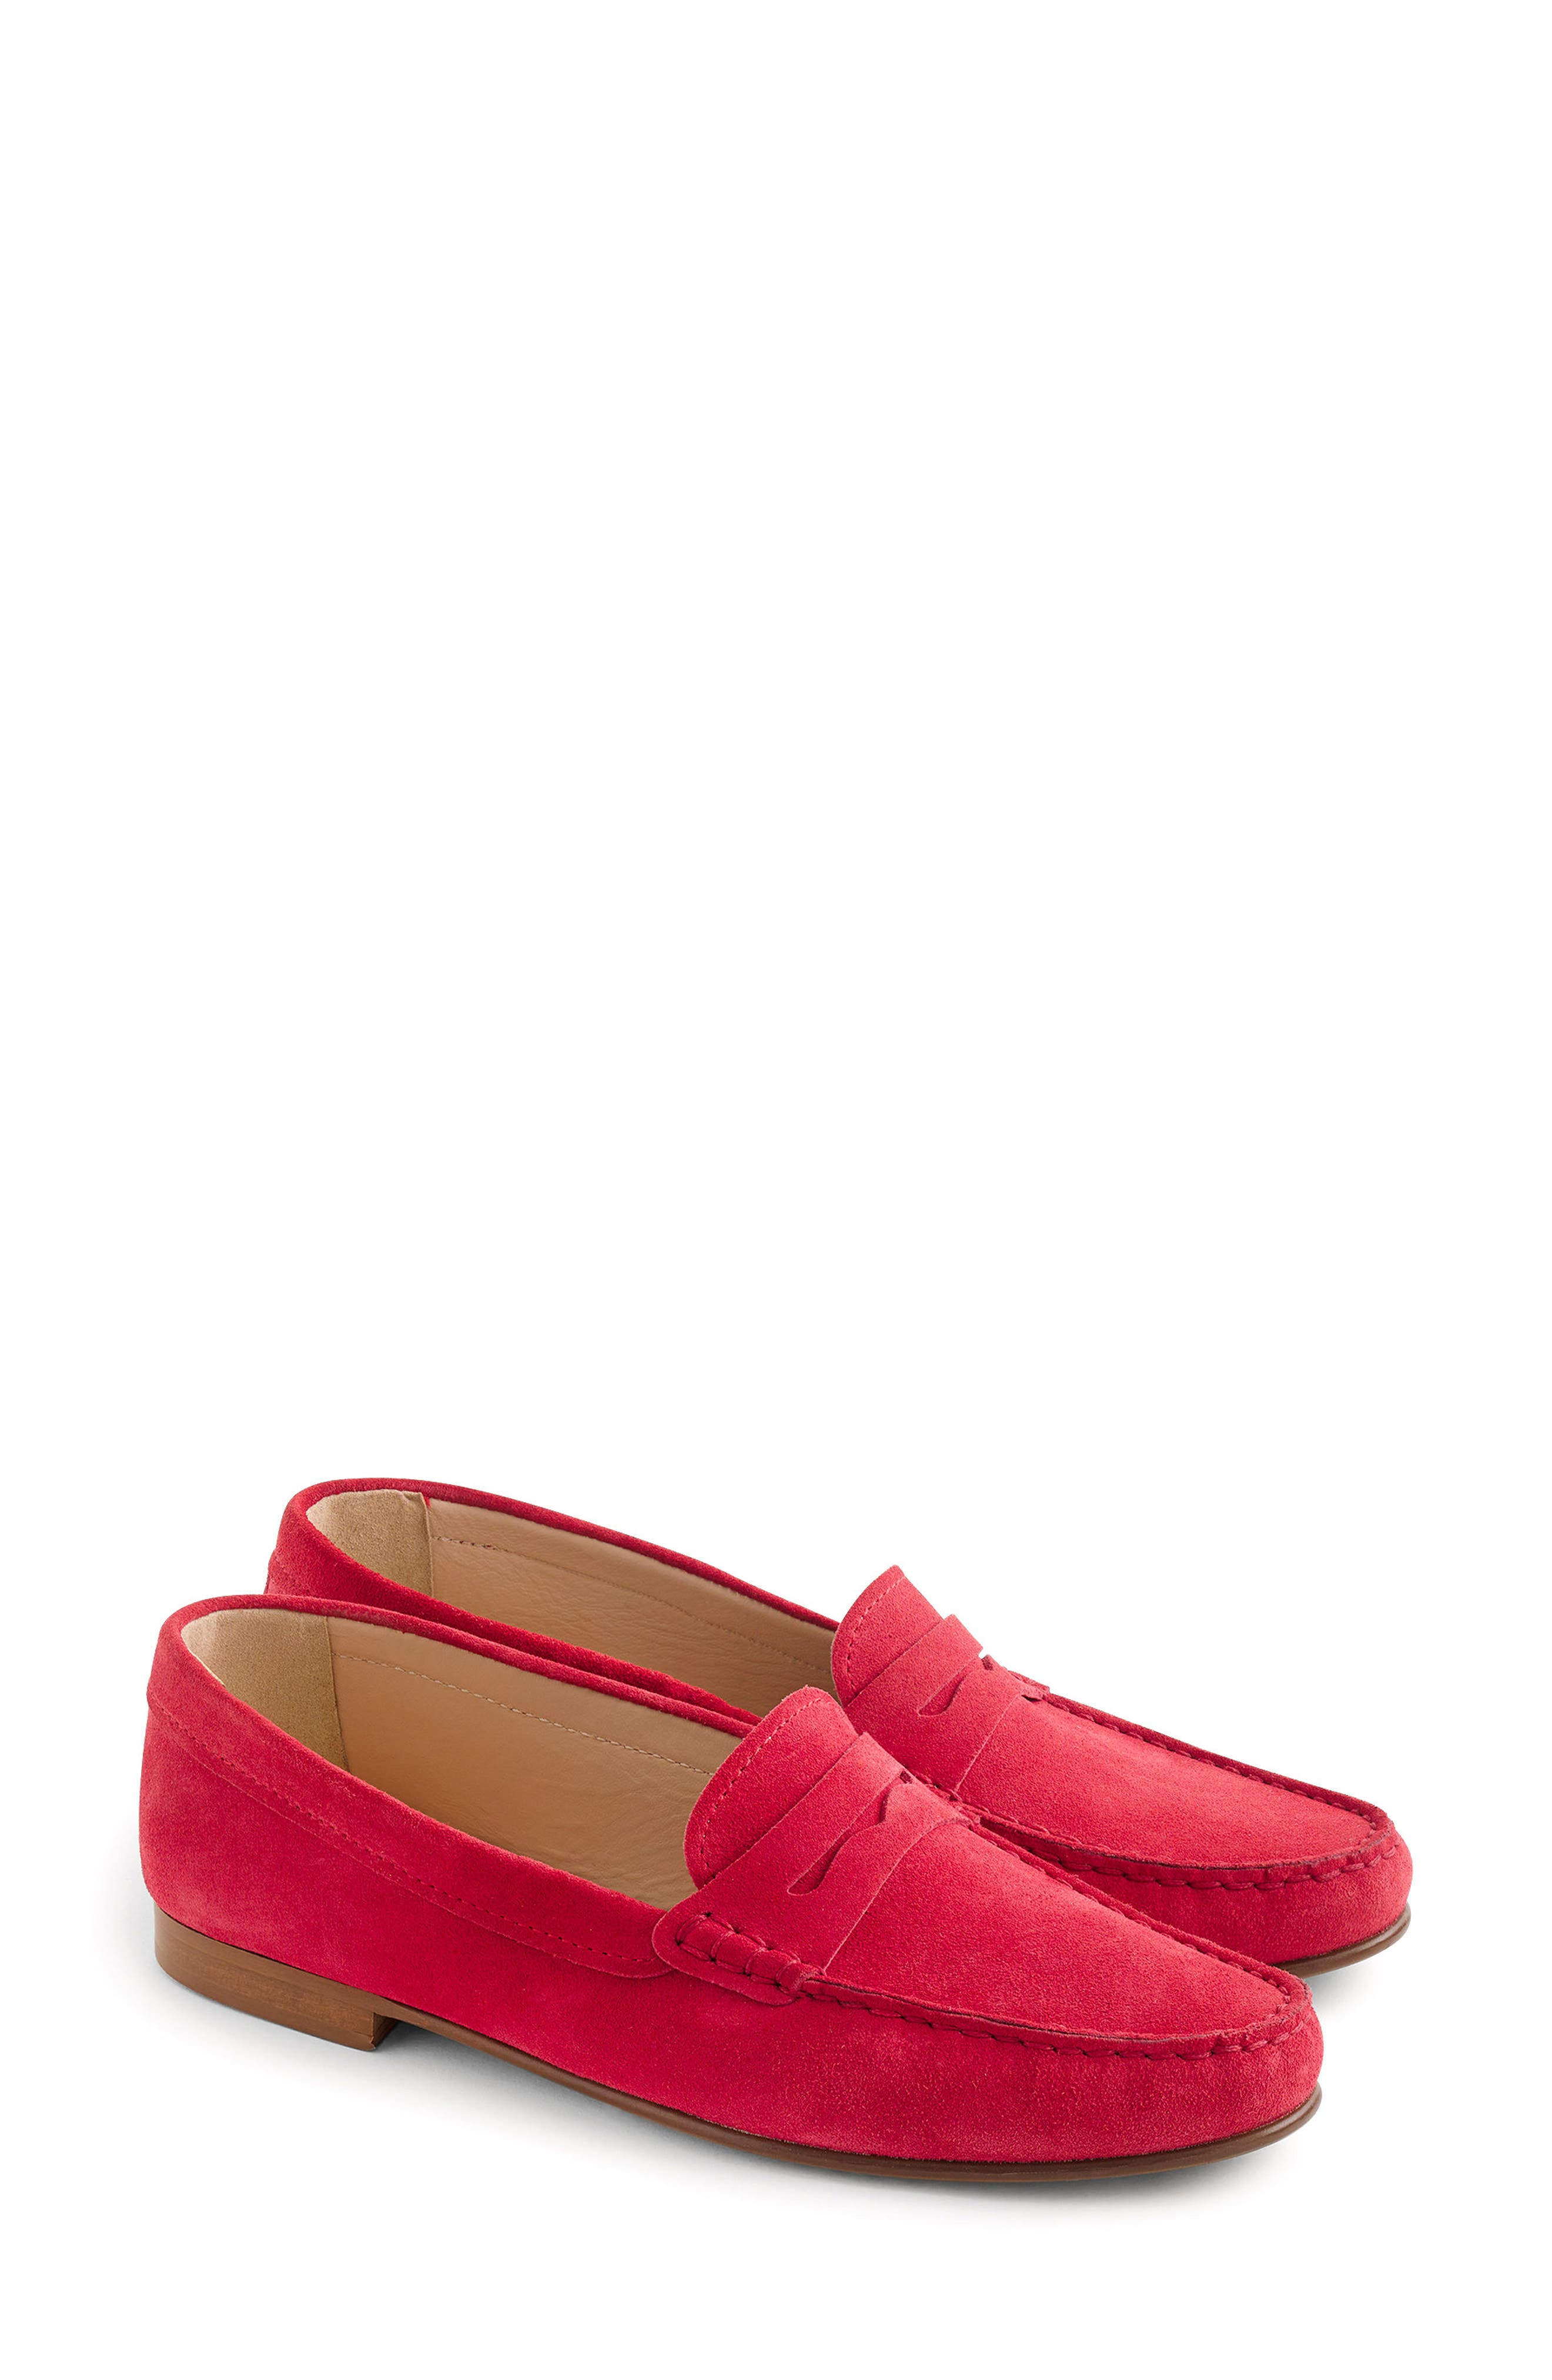 Main Image - J. Crew Felix Loafer (Women)